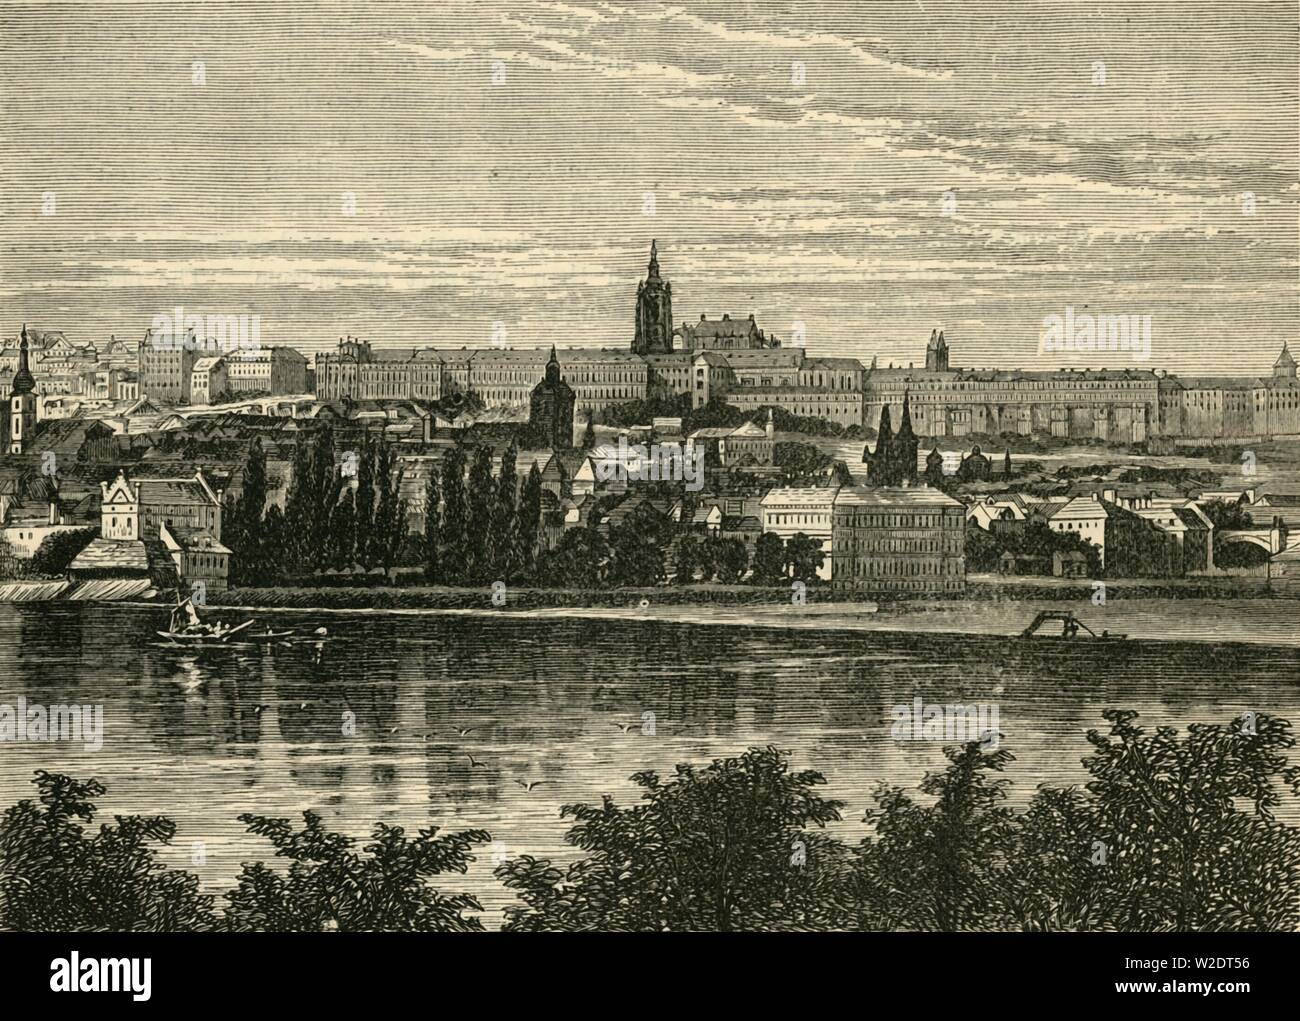 """'Palace of the Bohemian Kings and Cathedral of Hradschin, Prague', 1890. Prague Castle and Royal Palace, dating from  9th century, rebuilt in Gothic style under the reign of Charles IV and St Vitus Cathedral. From """"Cassell's Illustrated Universal History, Vol. III - The Middle Ages"""", by Edmund Ollier. [Cassell and Company, Limited, London, Paris and Melbourne, 1890. ] - Stock Image"""